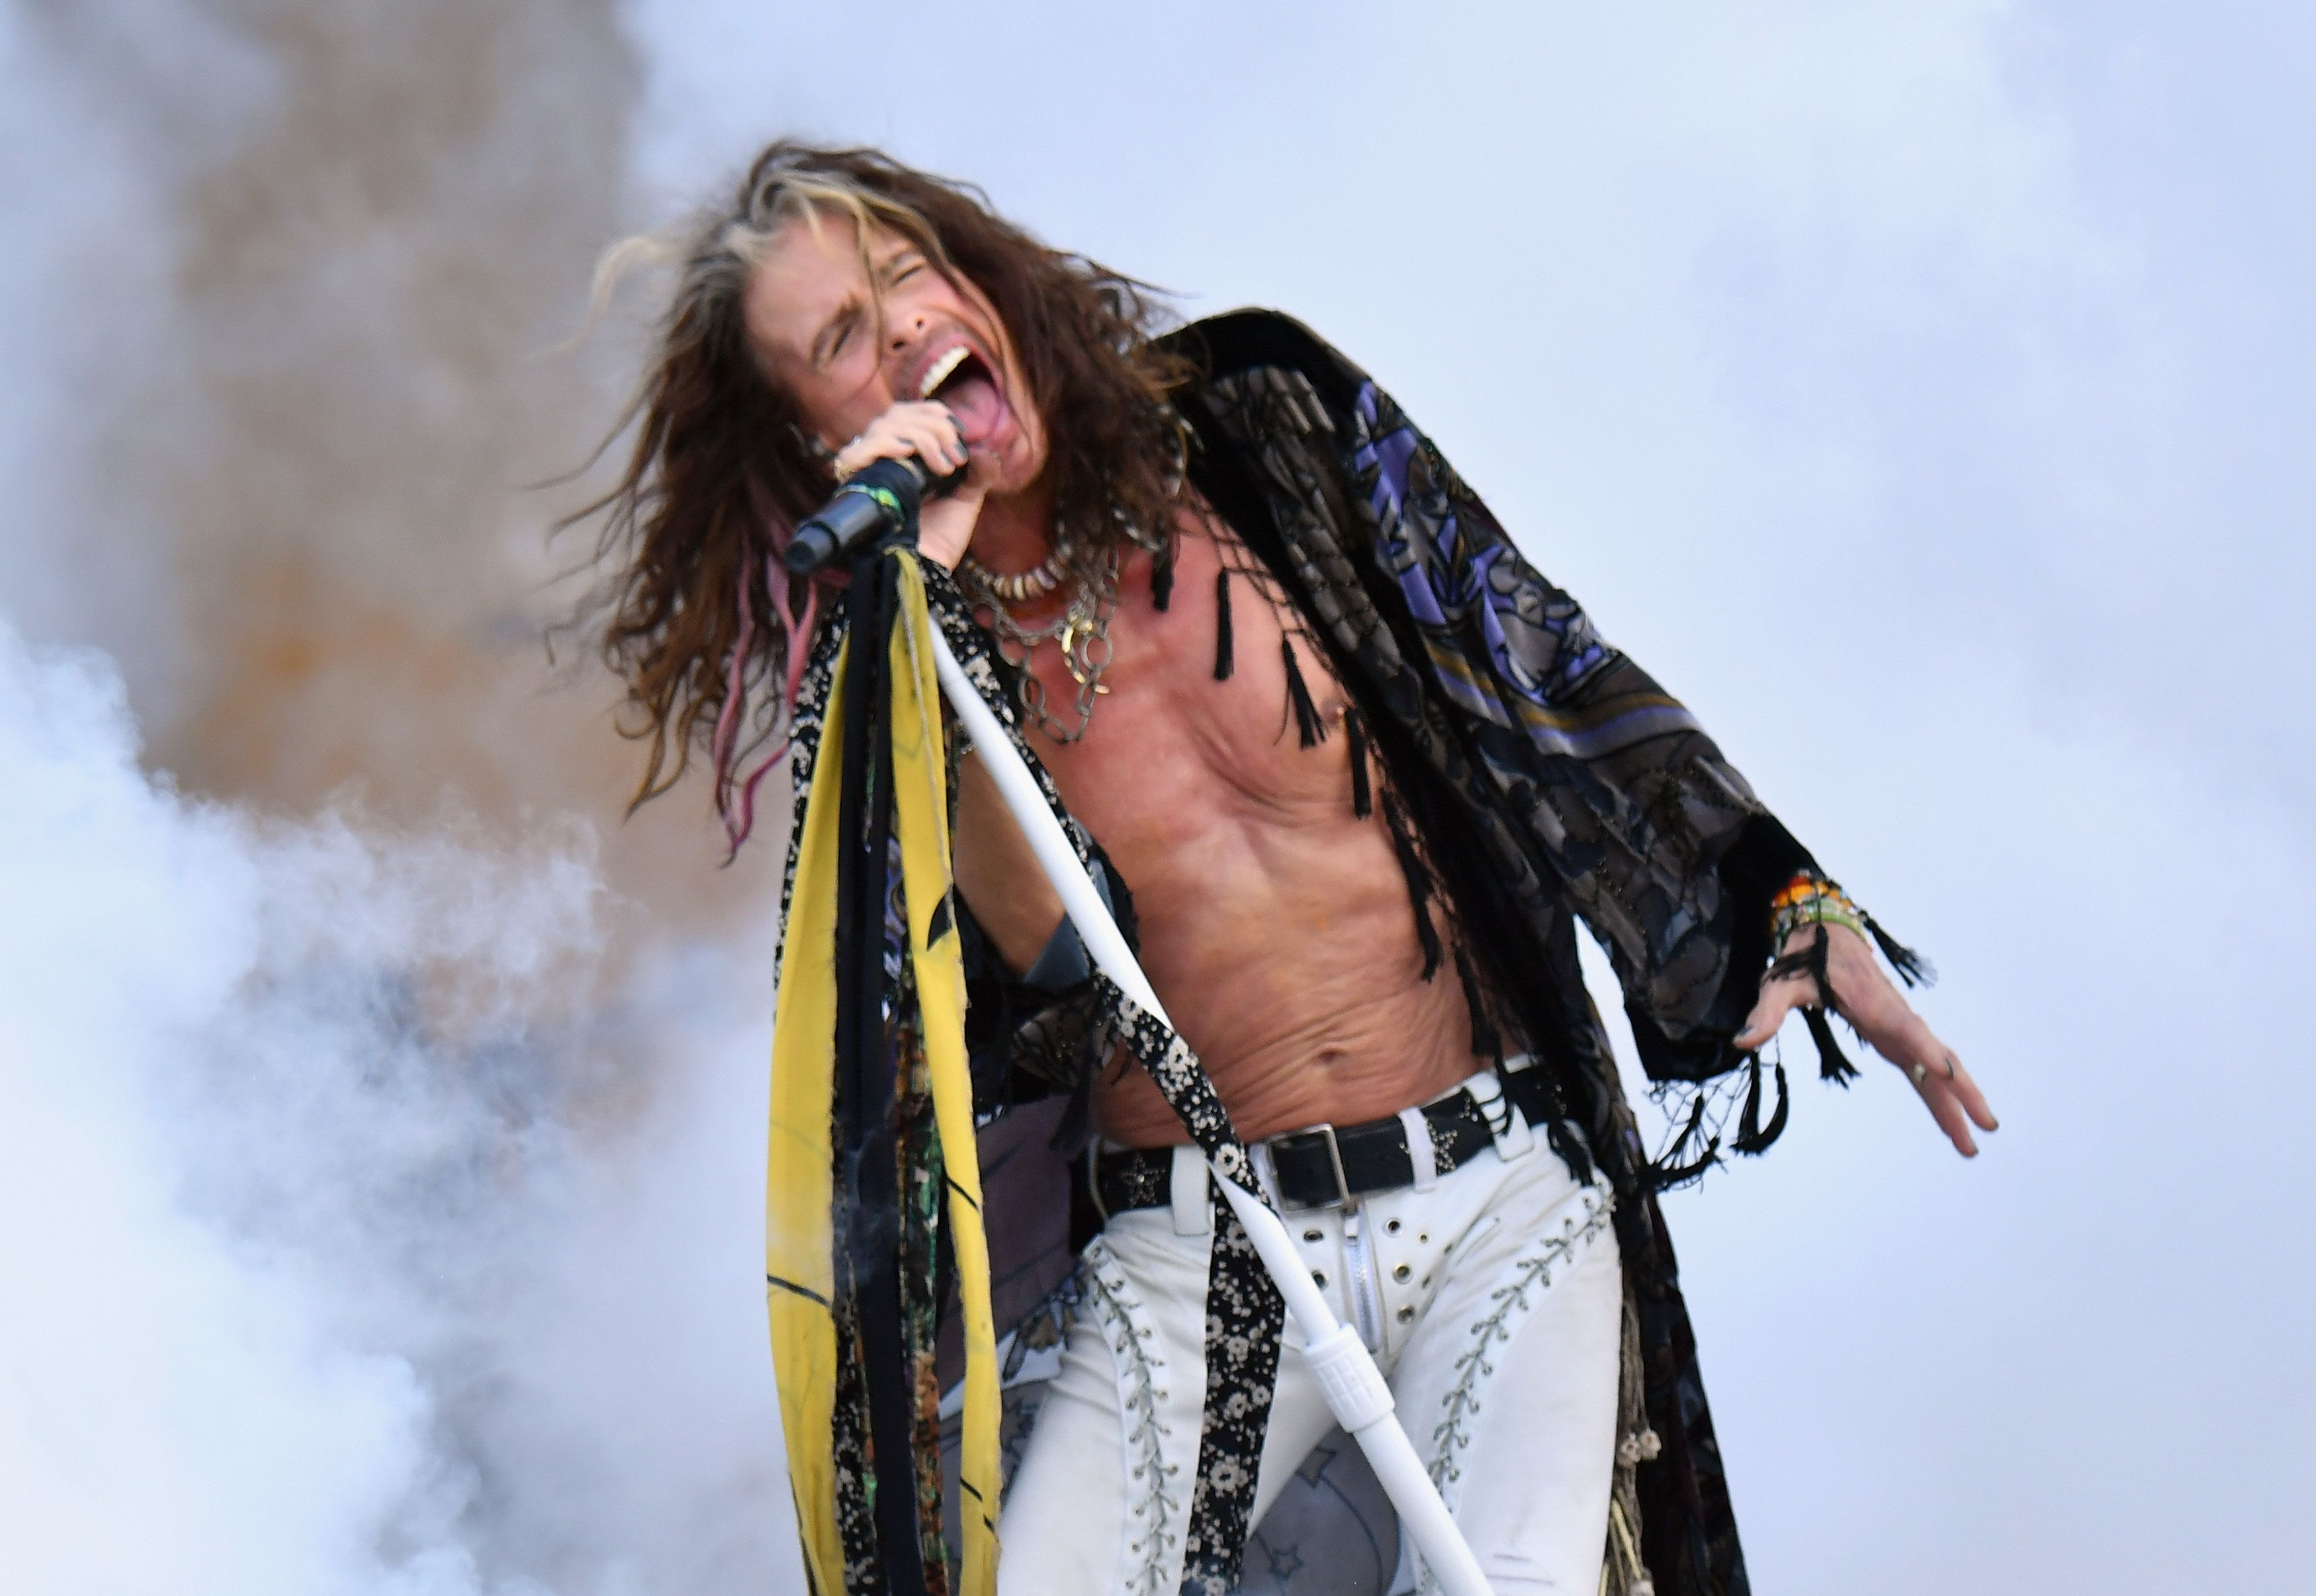 NEW ORLEANS, LA - MAY 05:  Steven Tyler of Aerosmith performs onstage during Day 6 of the 2018 New Orleans Jazz & Heritage Festival at Fair Grounds Race Course on May 5, 2018 in New Orleans, Louisiana.  (Photo by Jeff Kravitz/FilmMagic)